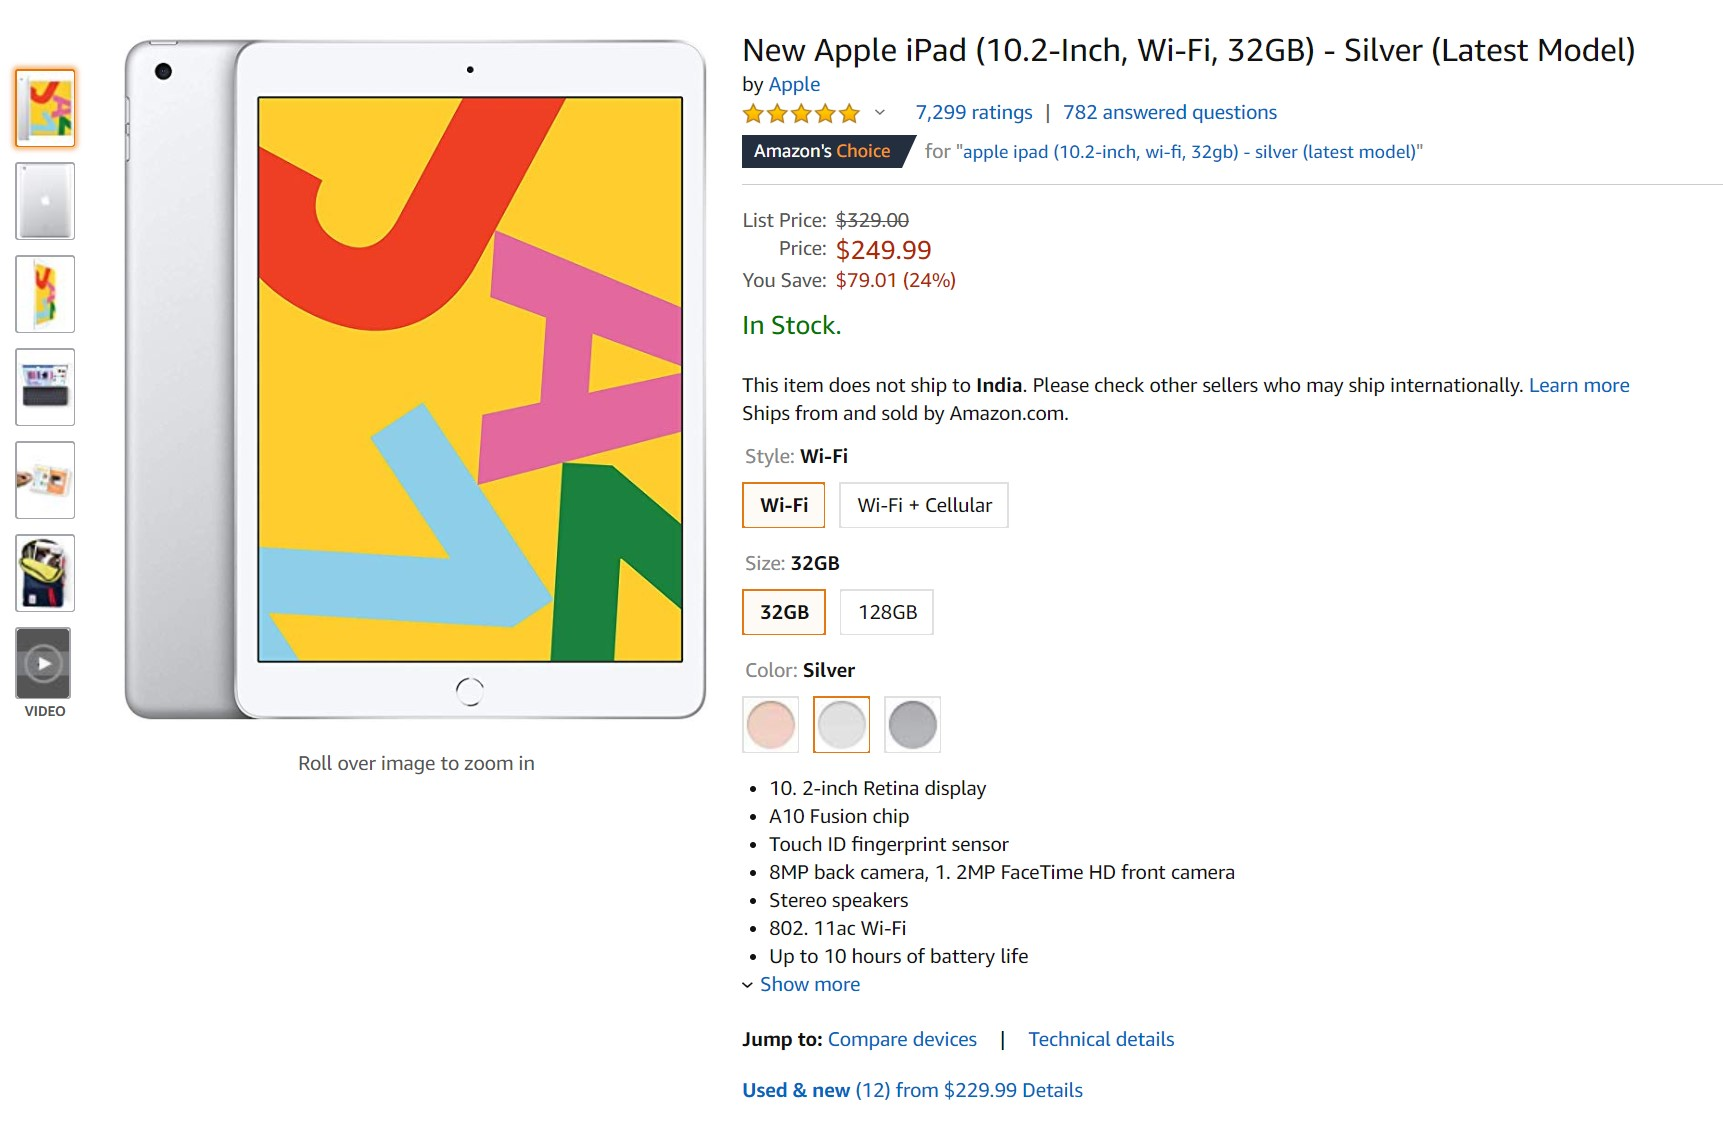 Deal Alert: The 10.2-inch iPad drops to its record low price once again 1